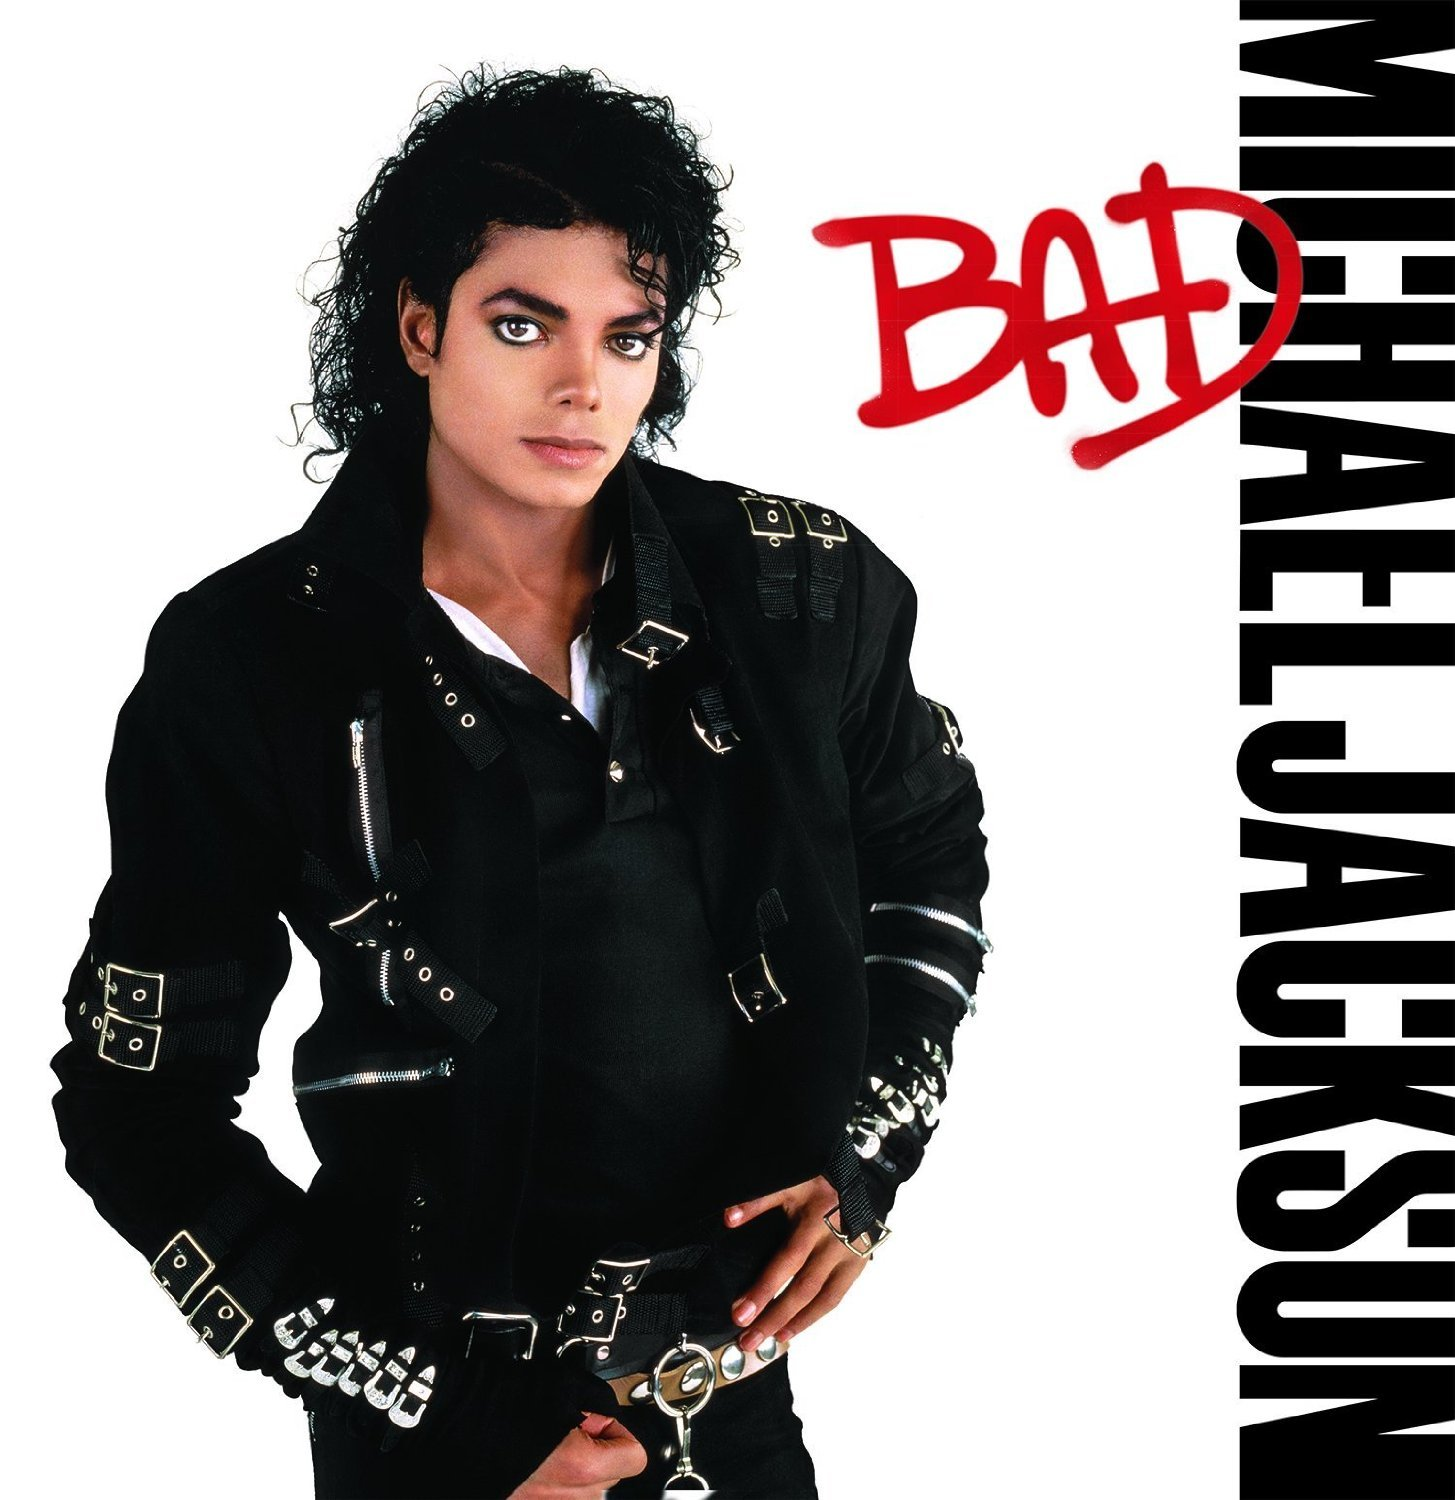 Bad (LP) [2016 Reissue] by Michael Jackson image